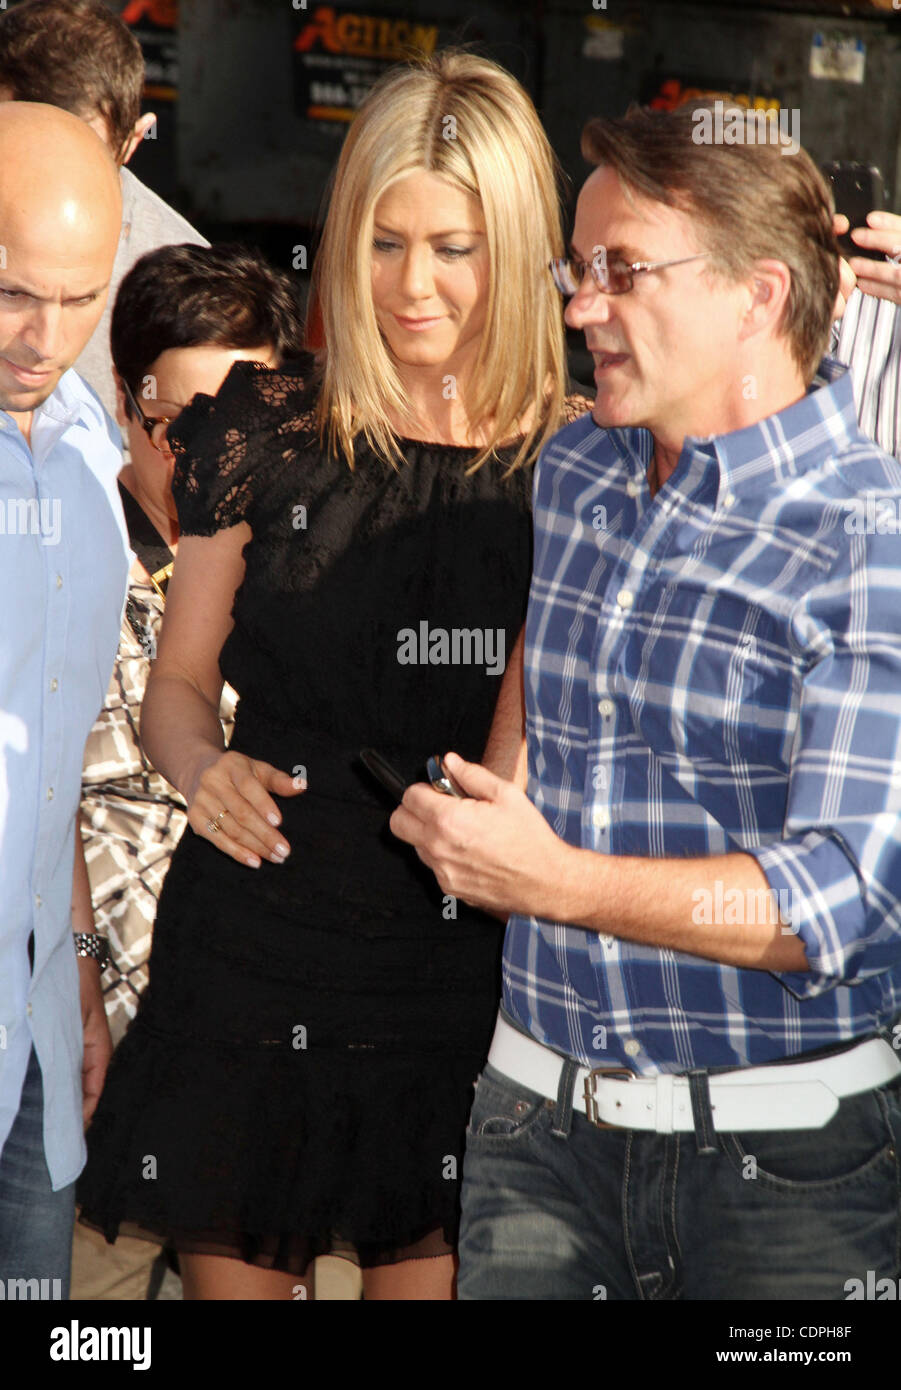 June 27, 2011 - New York, New York, U.S. - Actress JENNIFER ANISTON and publicist STEPHEN HUVANE at her appearance - Stock Image